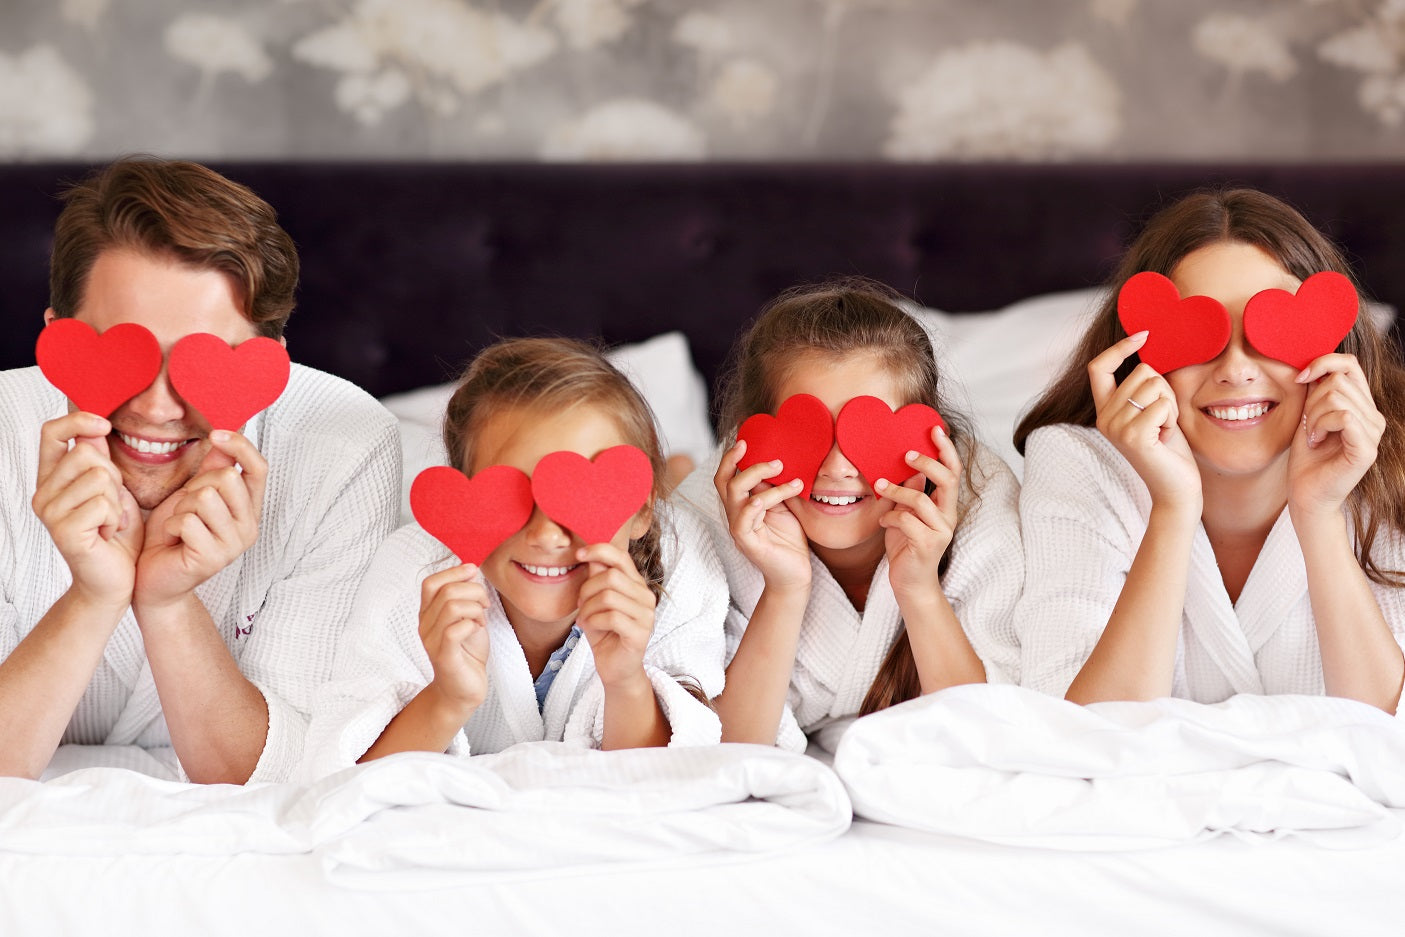 Family of 4 lay on bed holding hearts over eyes